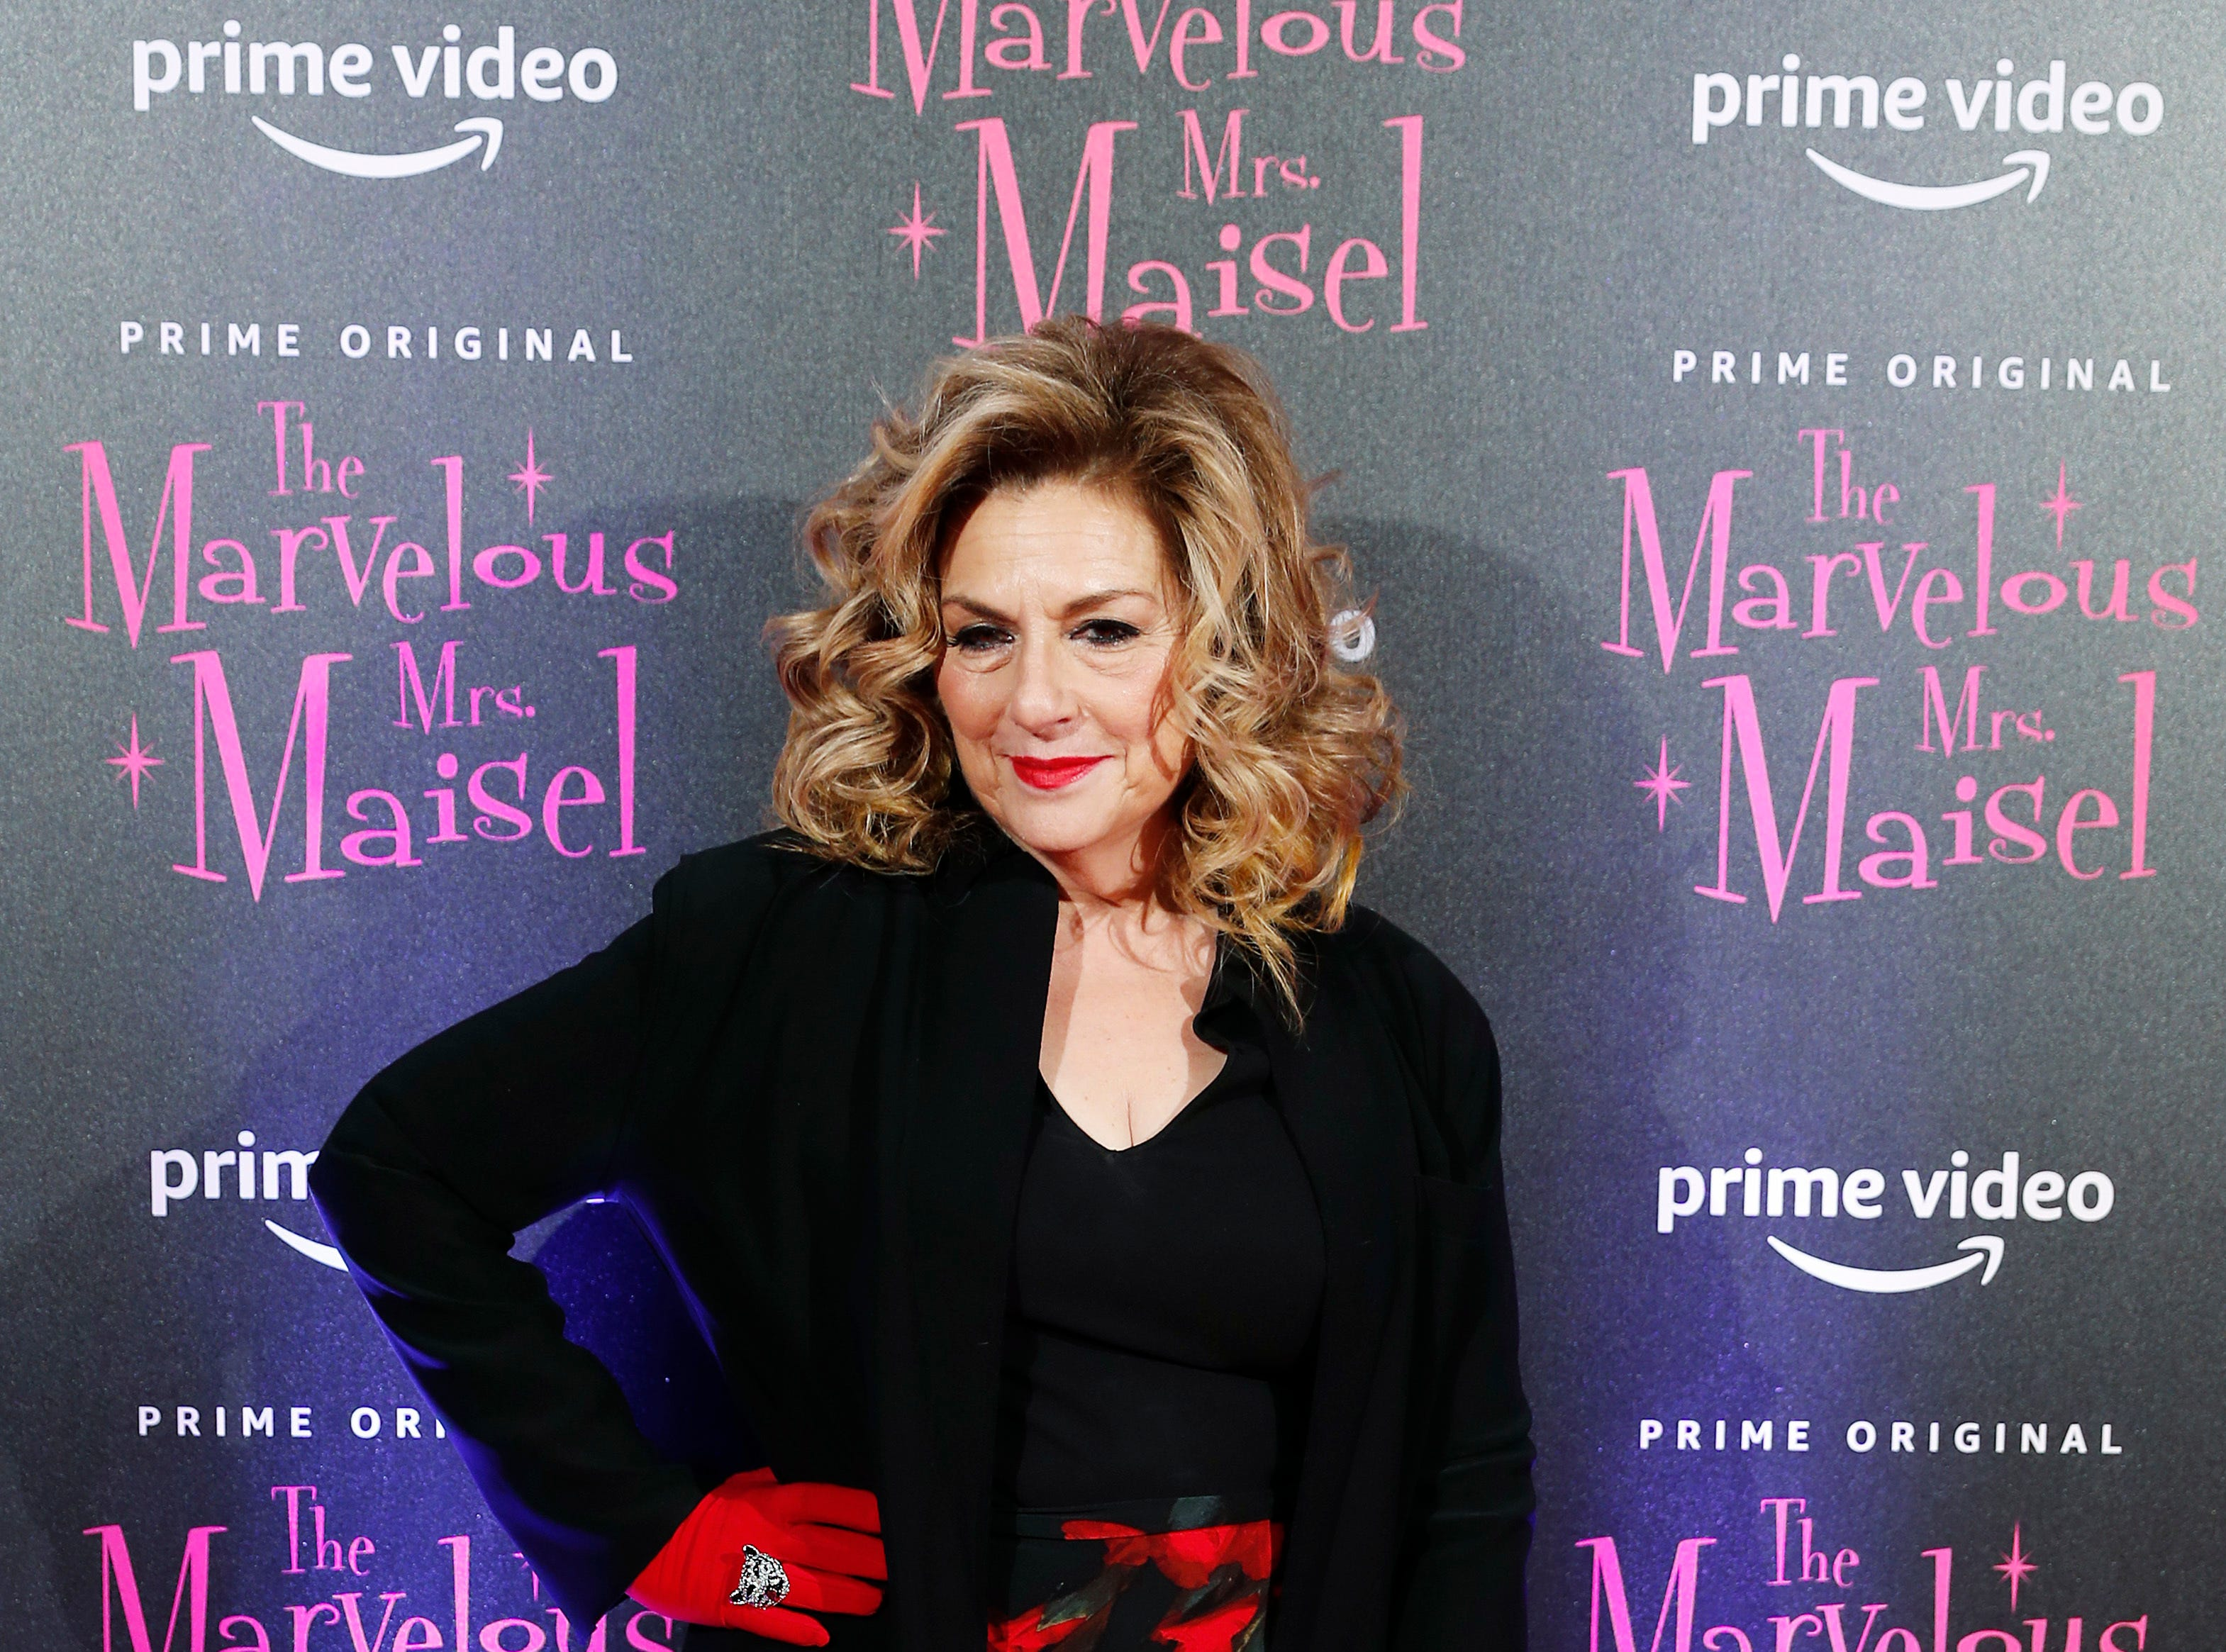 """Actress Caroline Aaron poses for photographers at the European Premiere of """"The Marvelous Mrs. Maisel"""" season 2, in Milan, Italy, Monday, Dec. 3, 2018."""